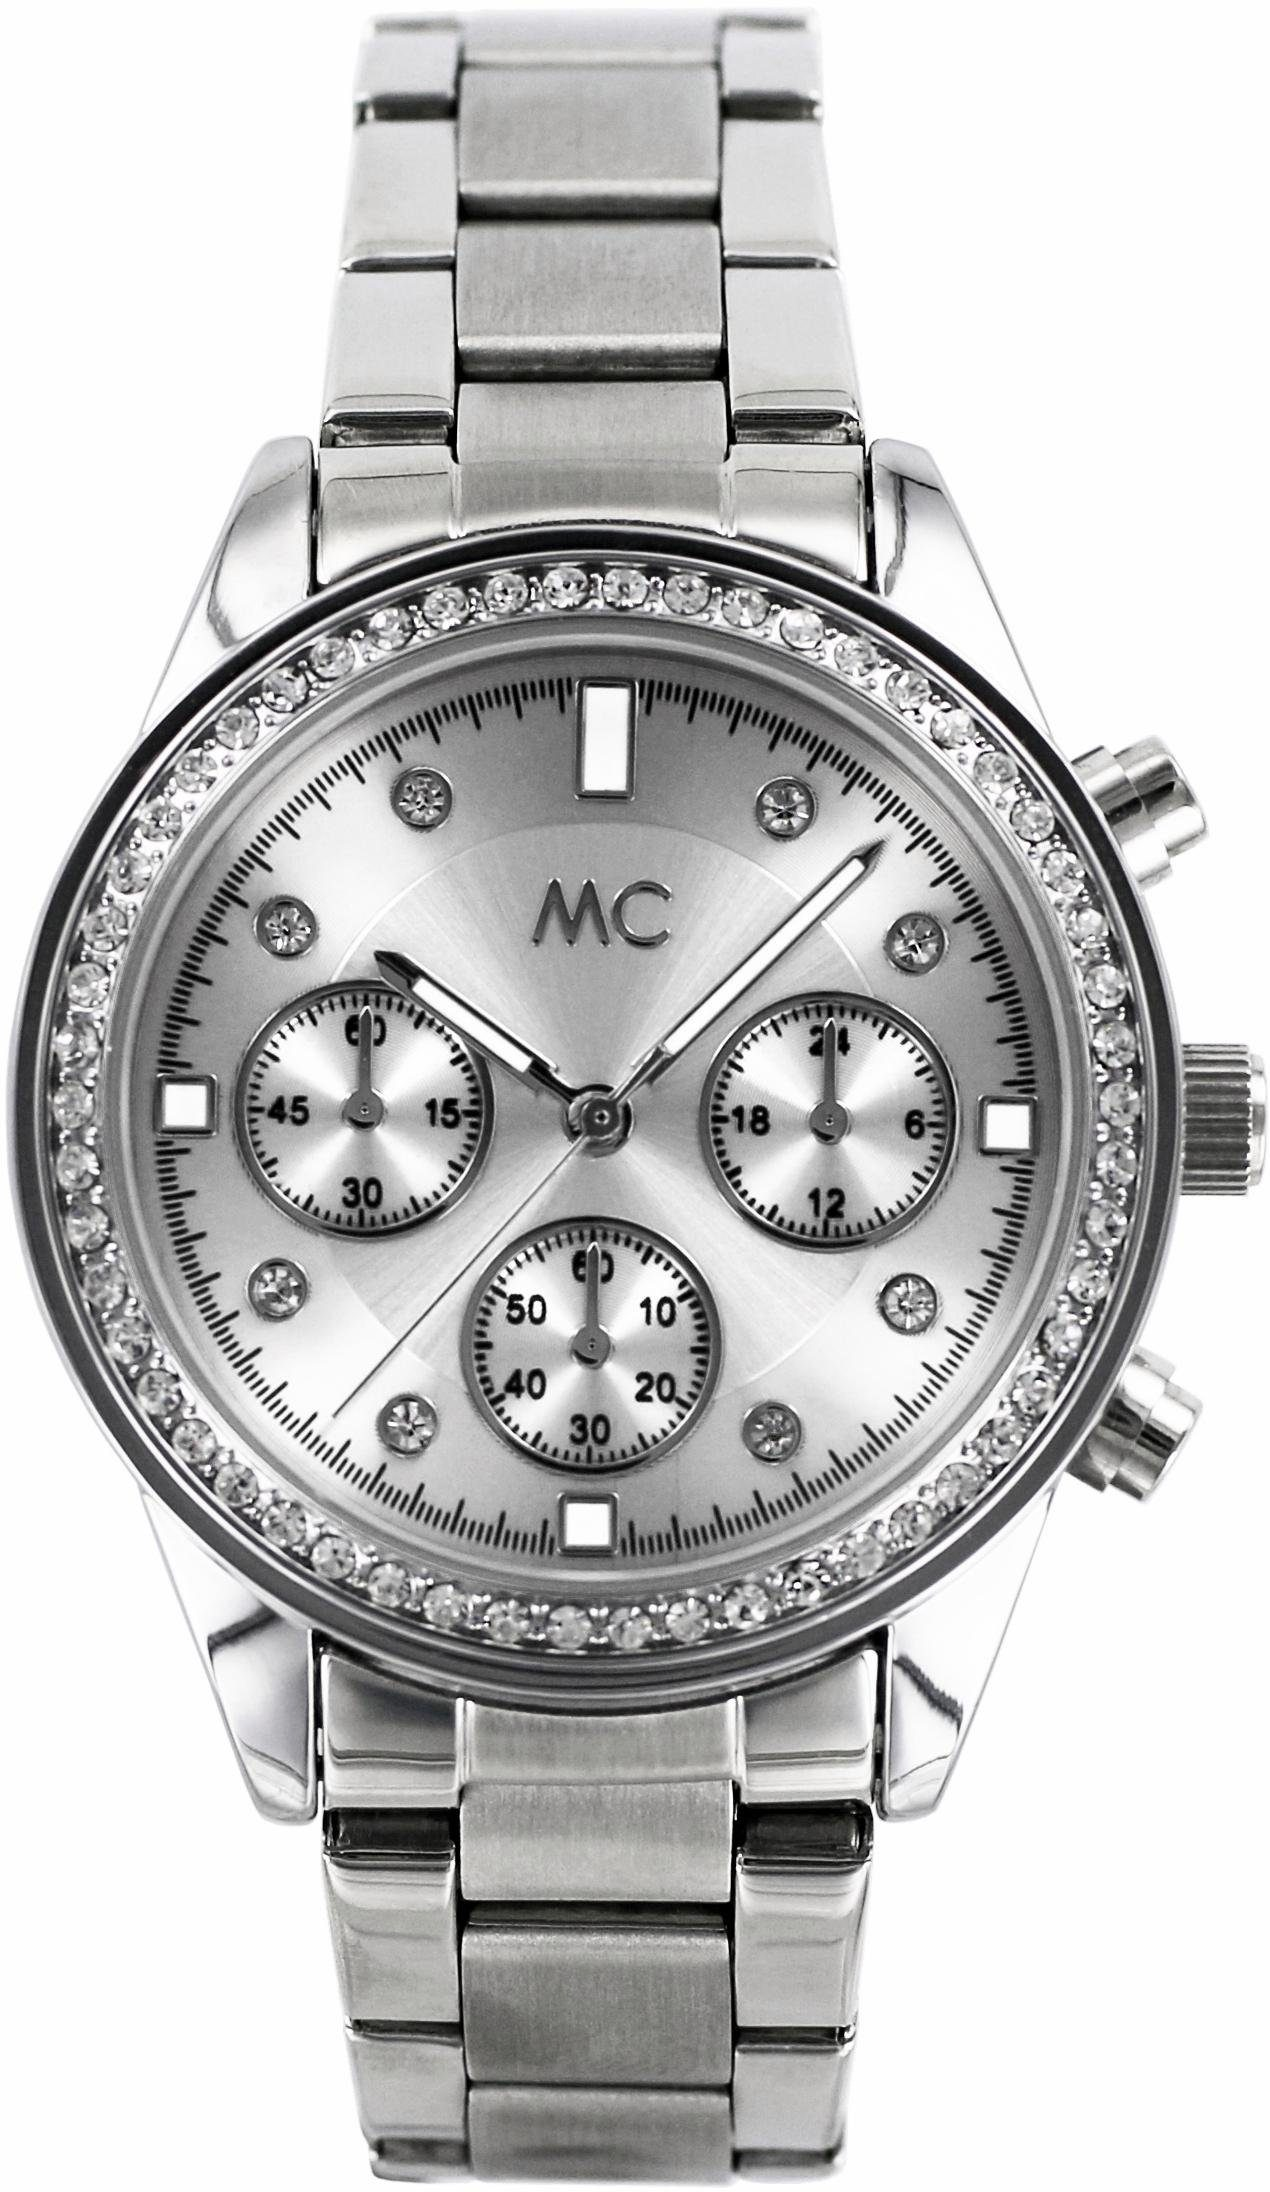 MC Quarzuhr »51881« in Chrono-Optik